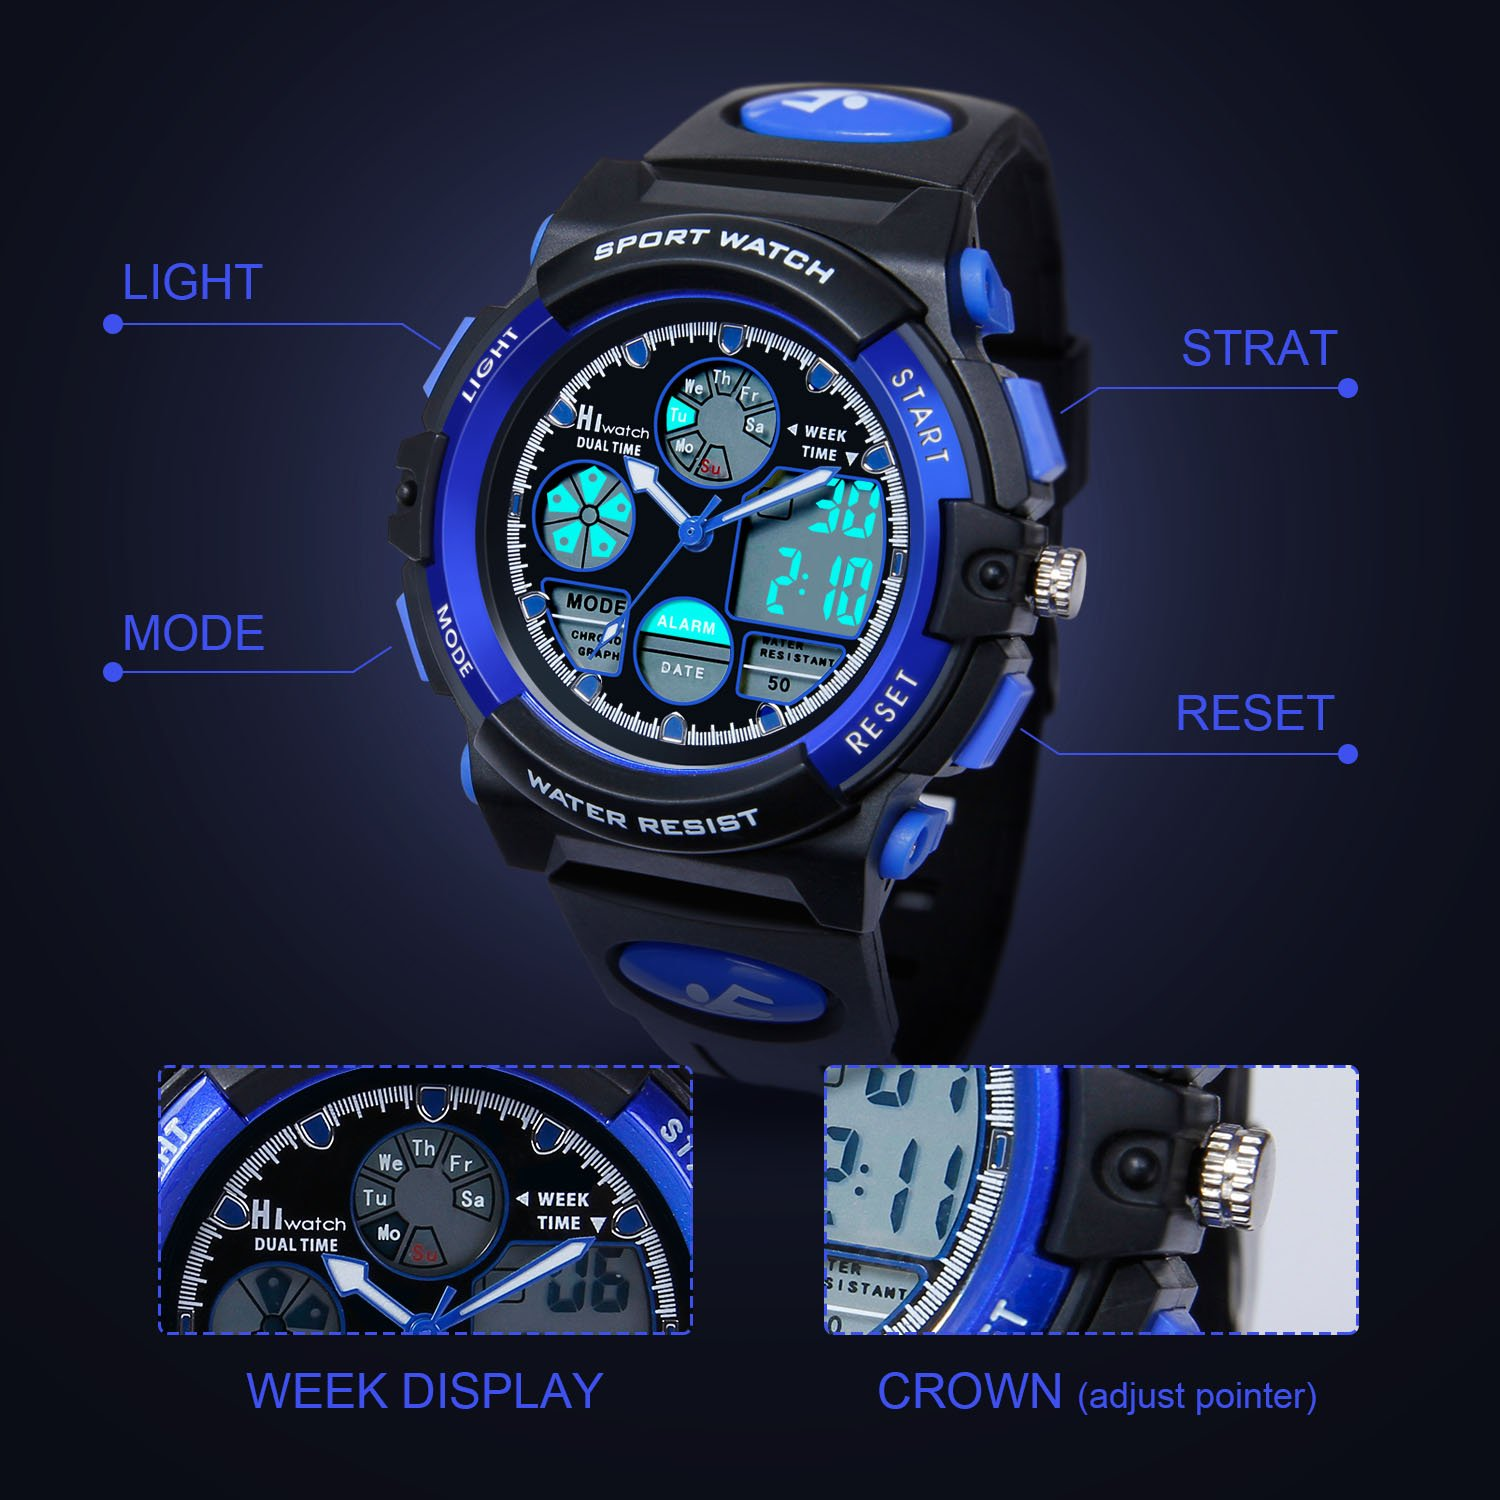 HIwatch Youth Watches Boys Girls Water-resistant Sports Digital Wrist Watch for Teenager Students,Blue by Hi Watch (Image #3)